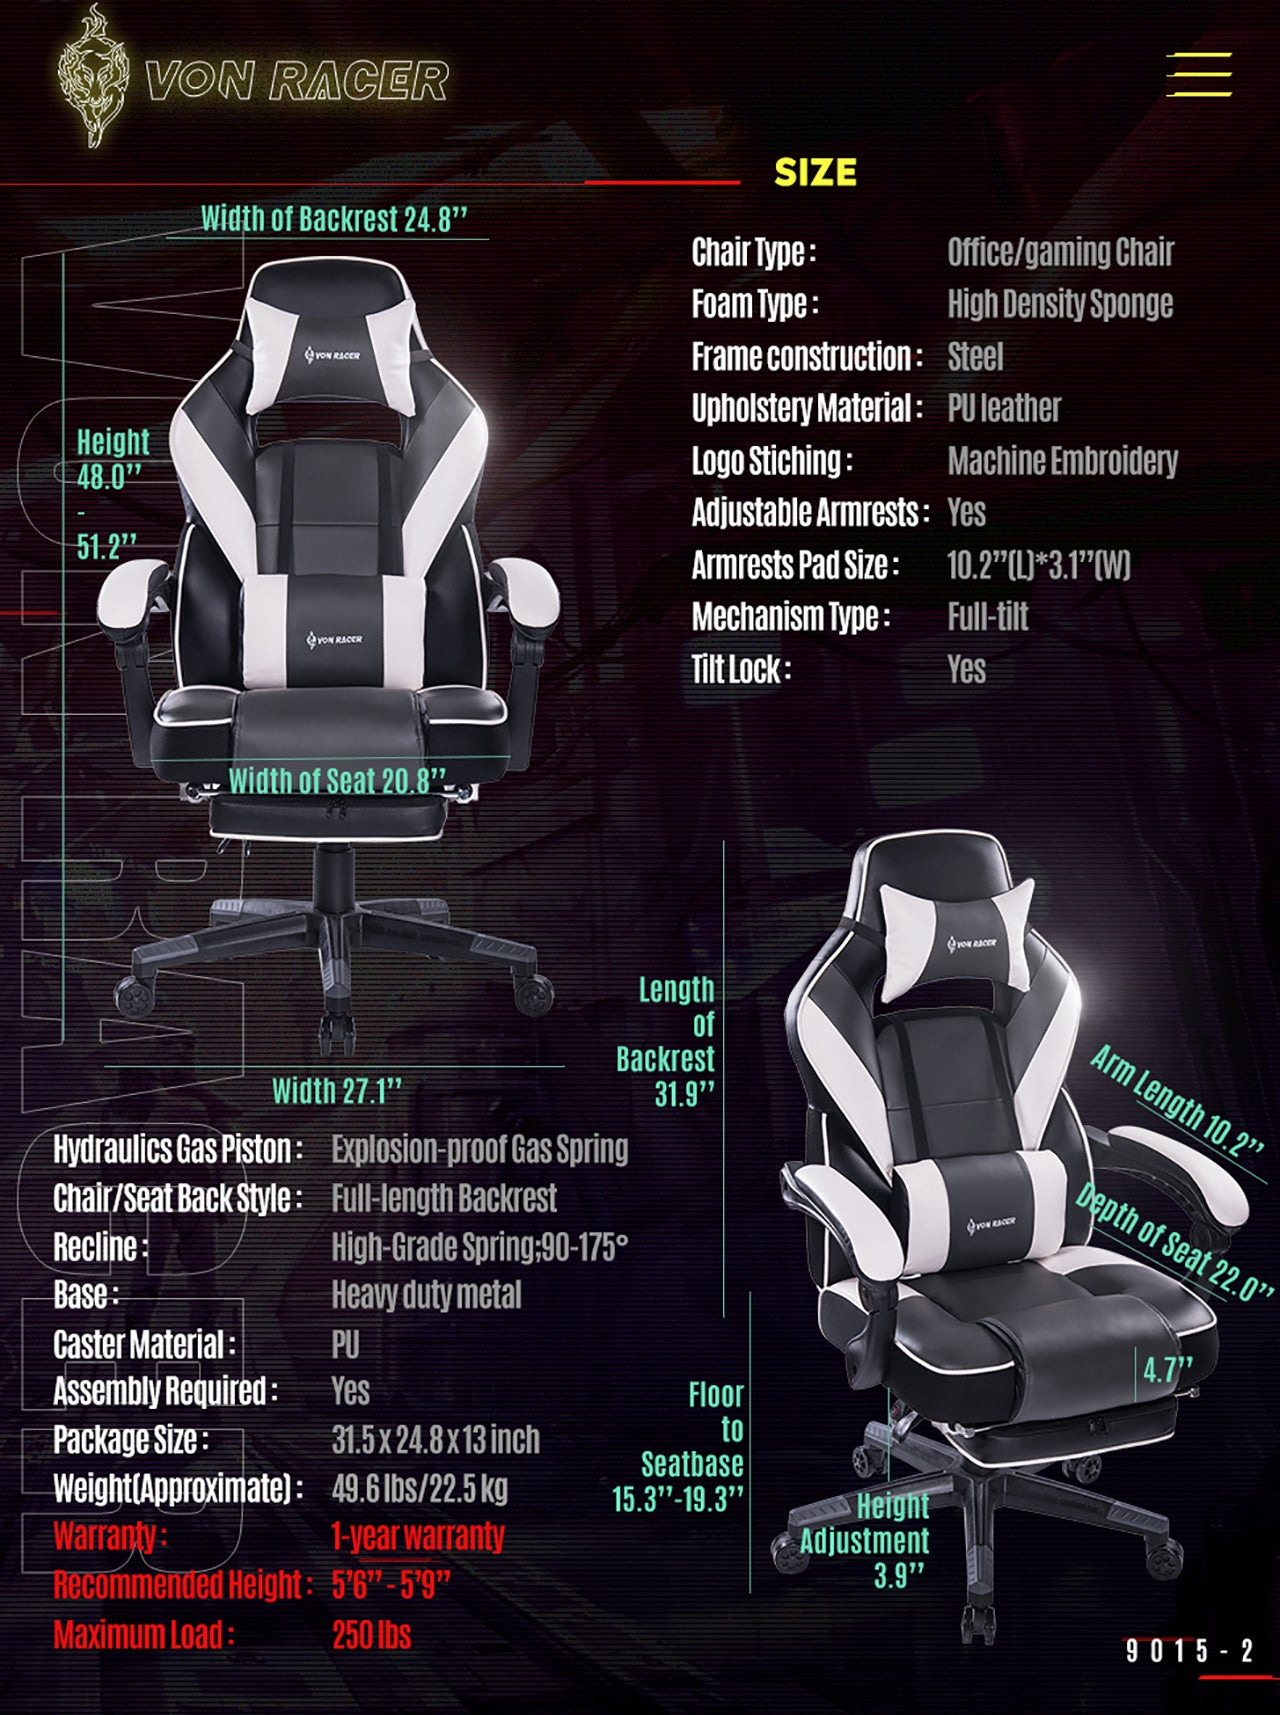 VON RACER 9015 GRAY RECLINING MASSAGE GAMING CHAIR WITH FOOTREST SPECIFICATION